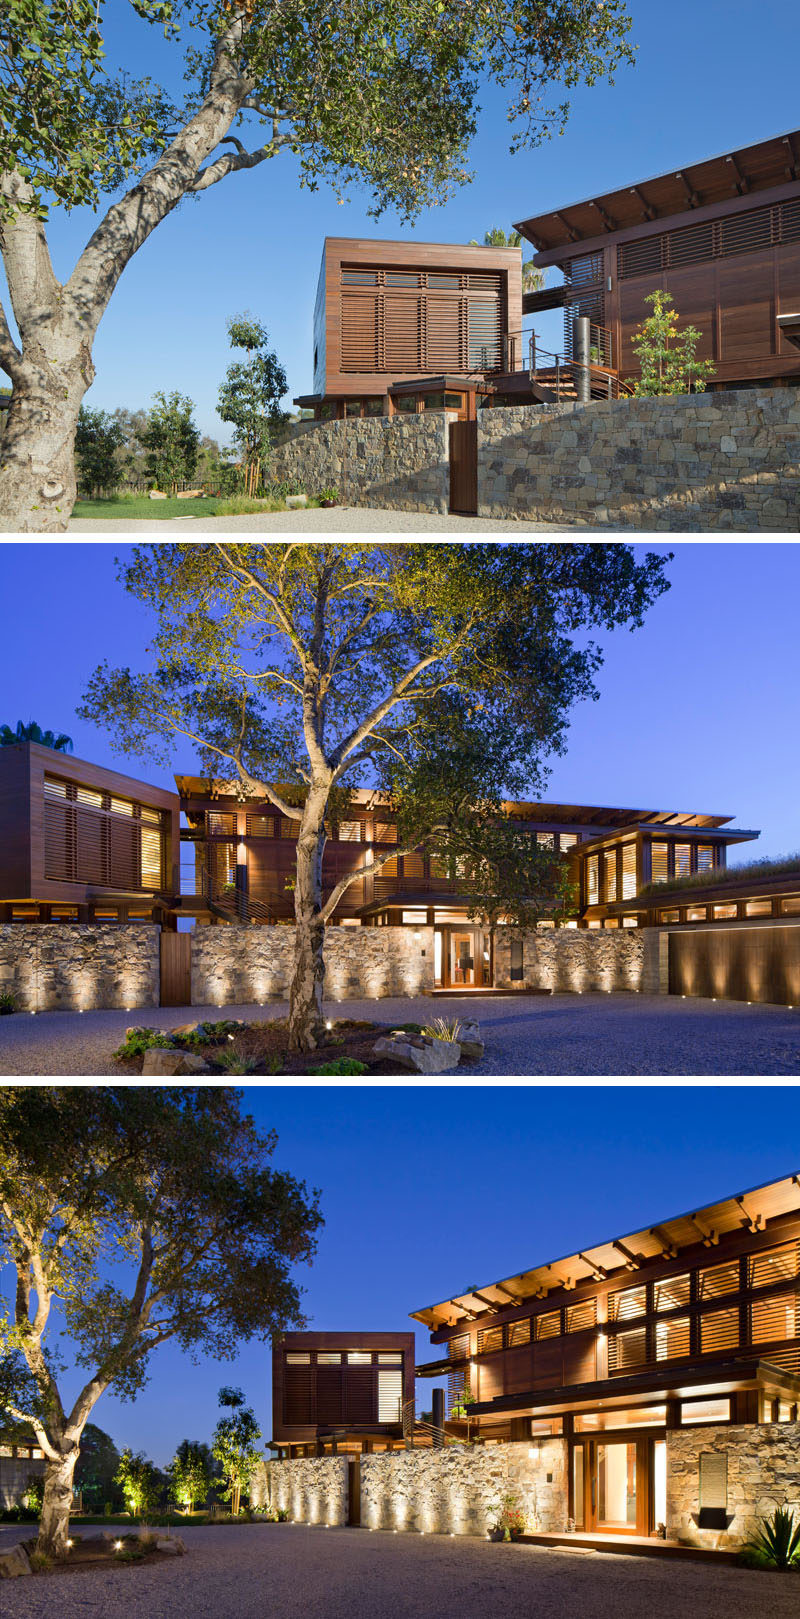 Upon arriving at this modern house, you are greeted by a circular driveway with a central highlighted tree and a stone wall. #ModernHouse #Uplighting #LandscapeDesign